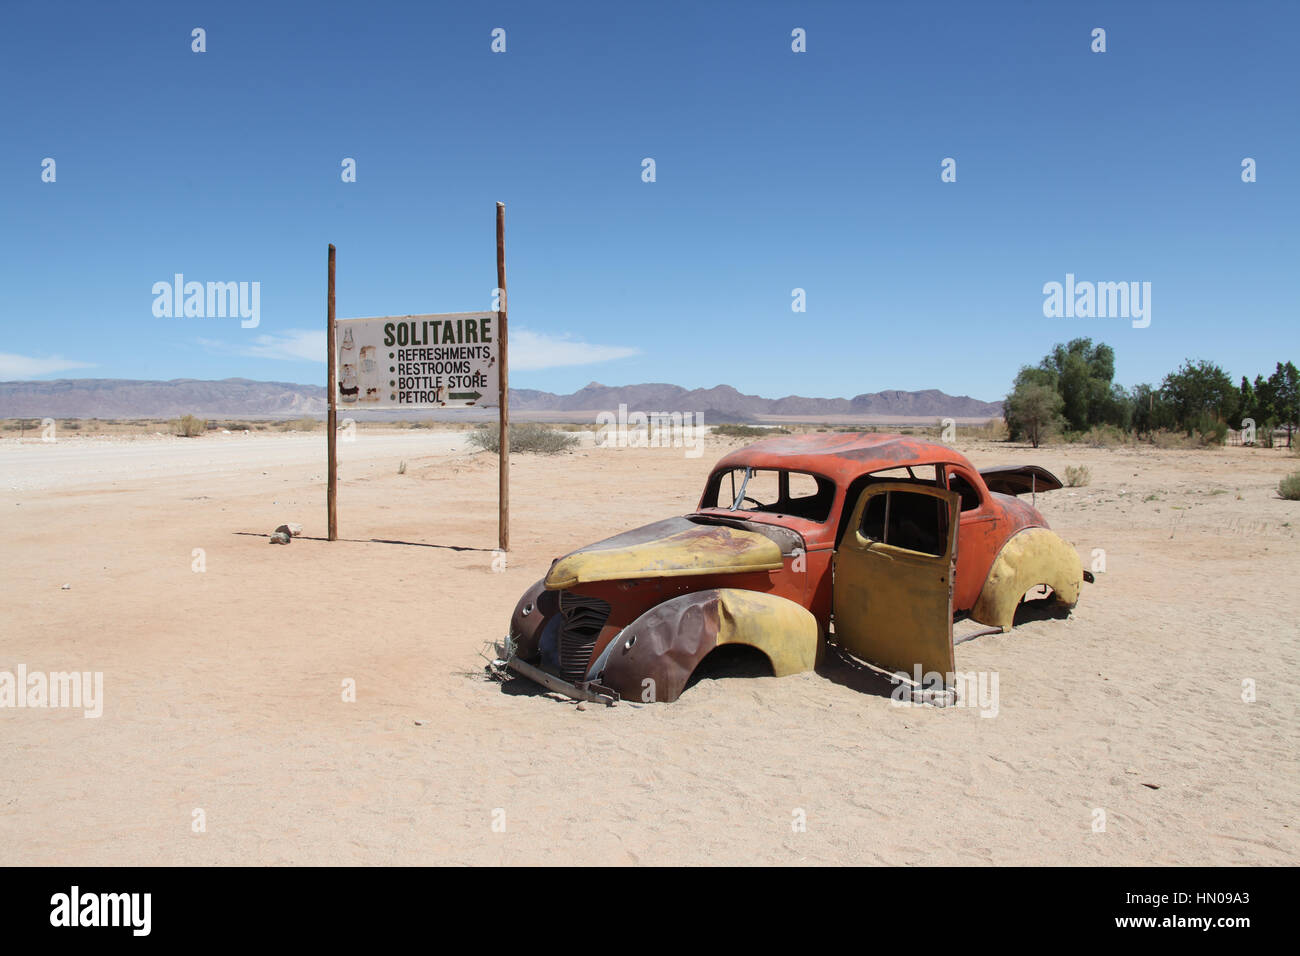 Solitaire settlement in central Namibia which is a popular stopover for tourists - Stock Image